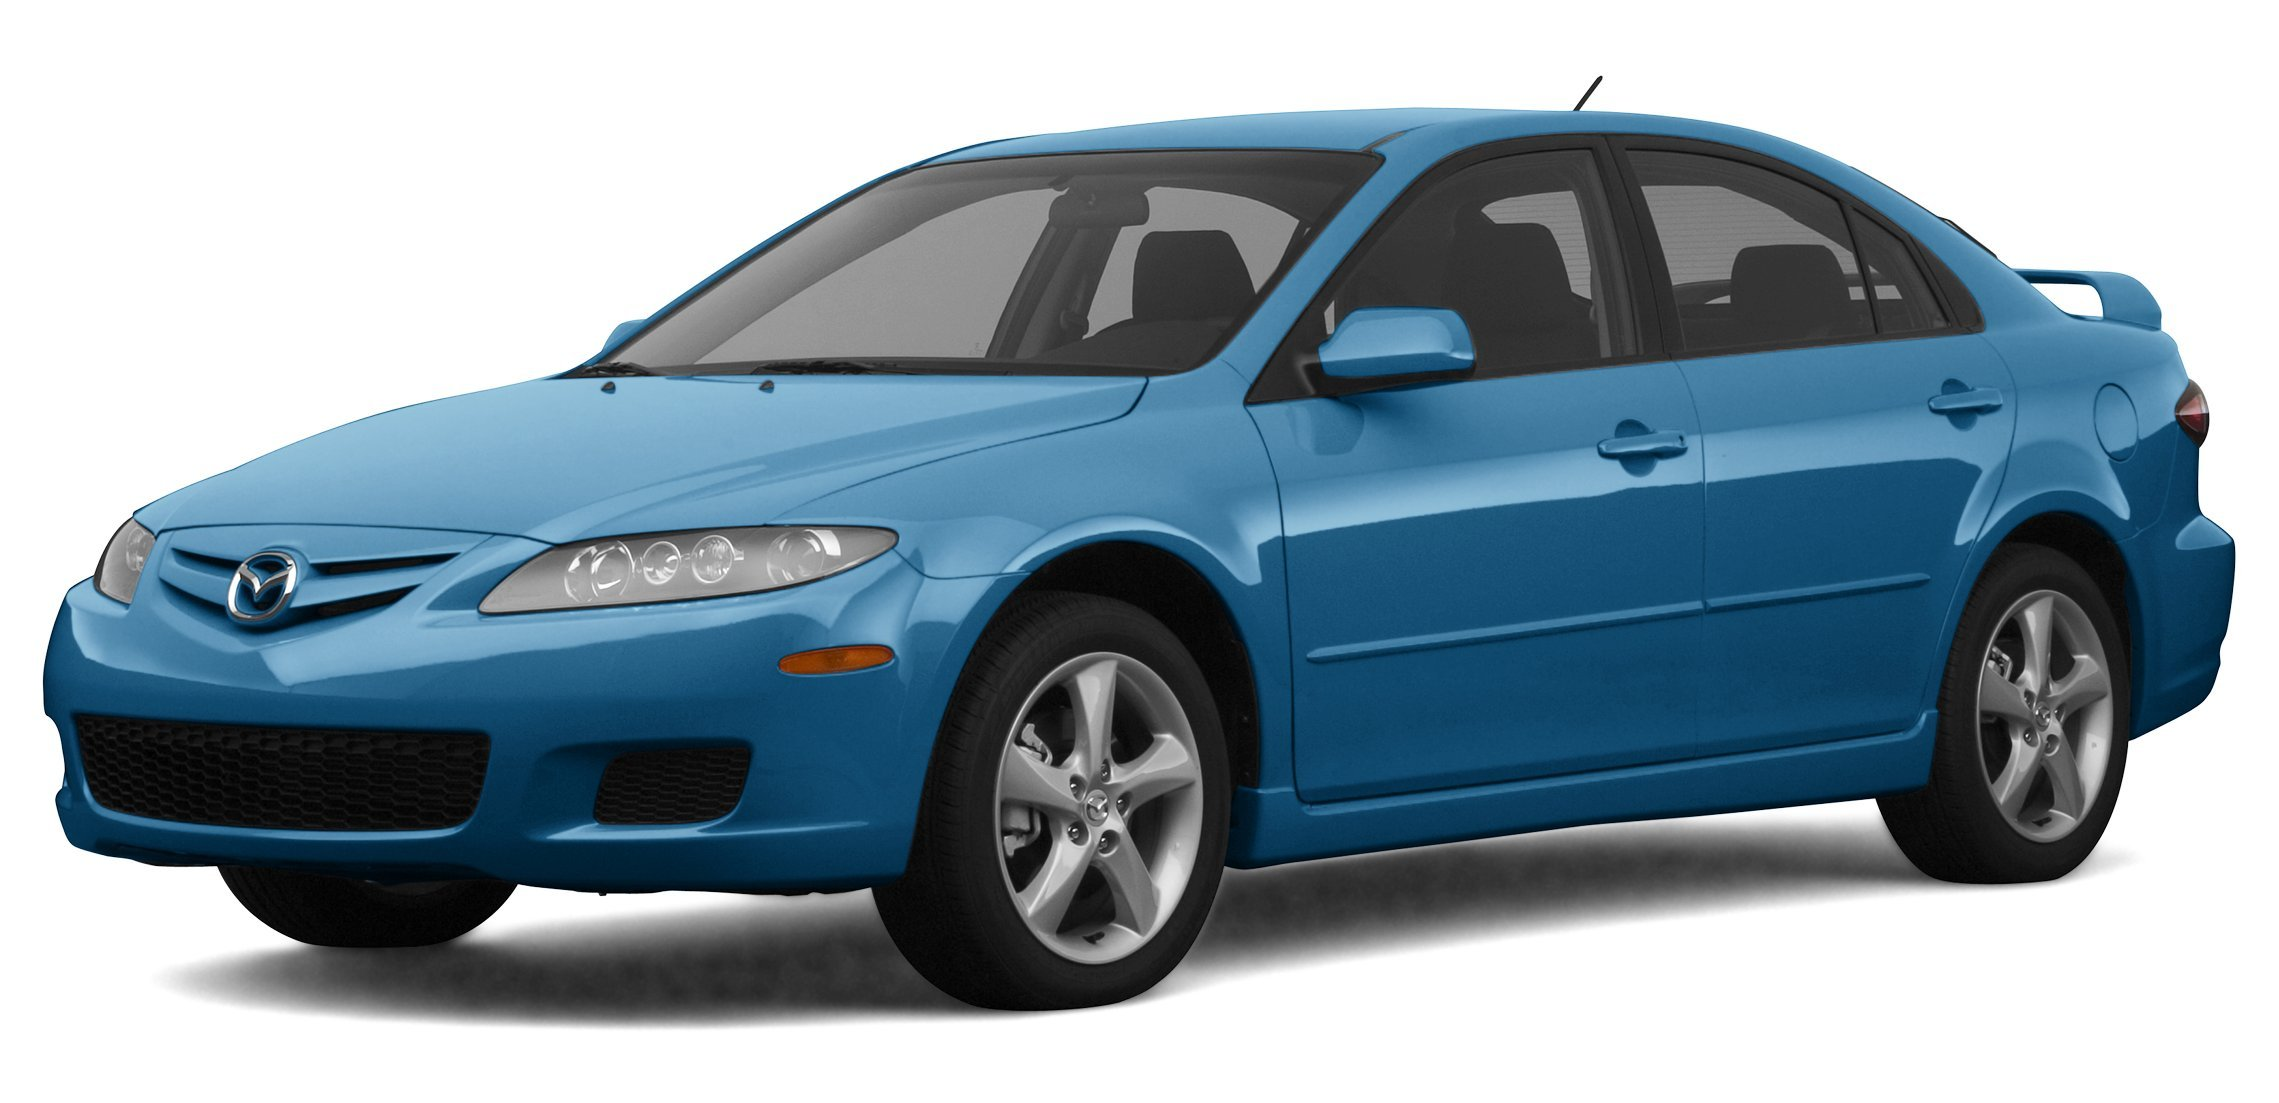 Amazon 2007 Chevrolet Impala Reviews and Specs Vehicles